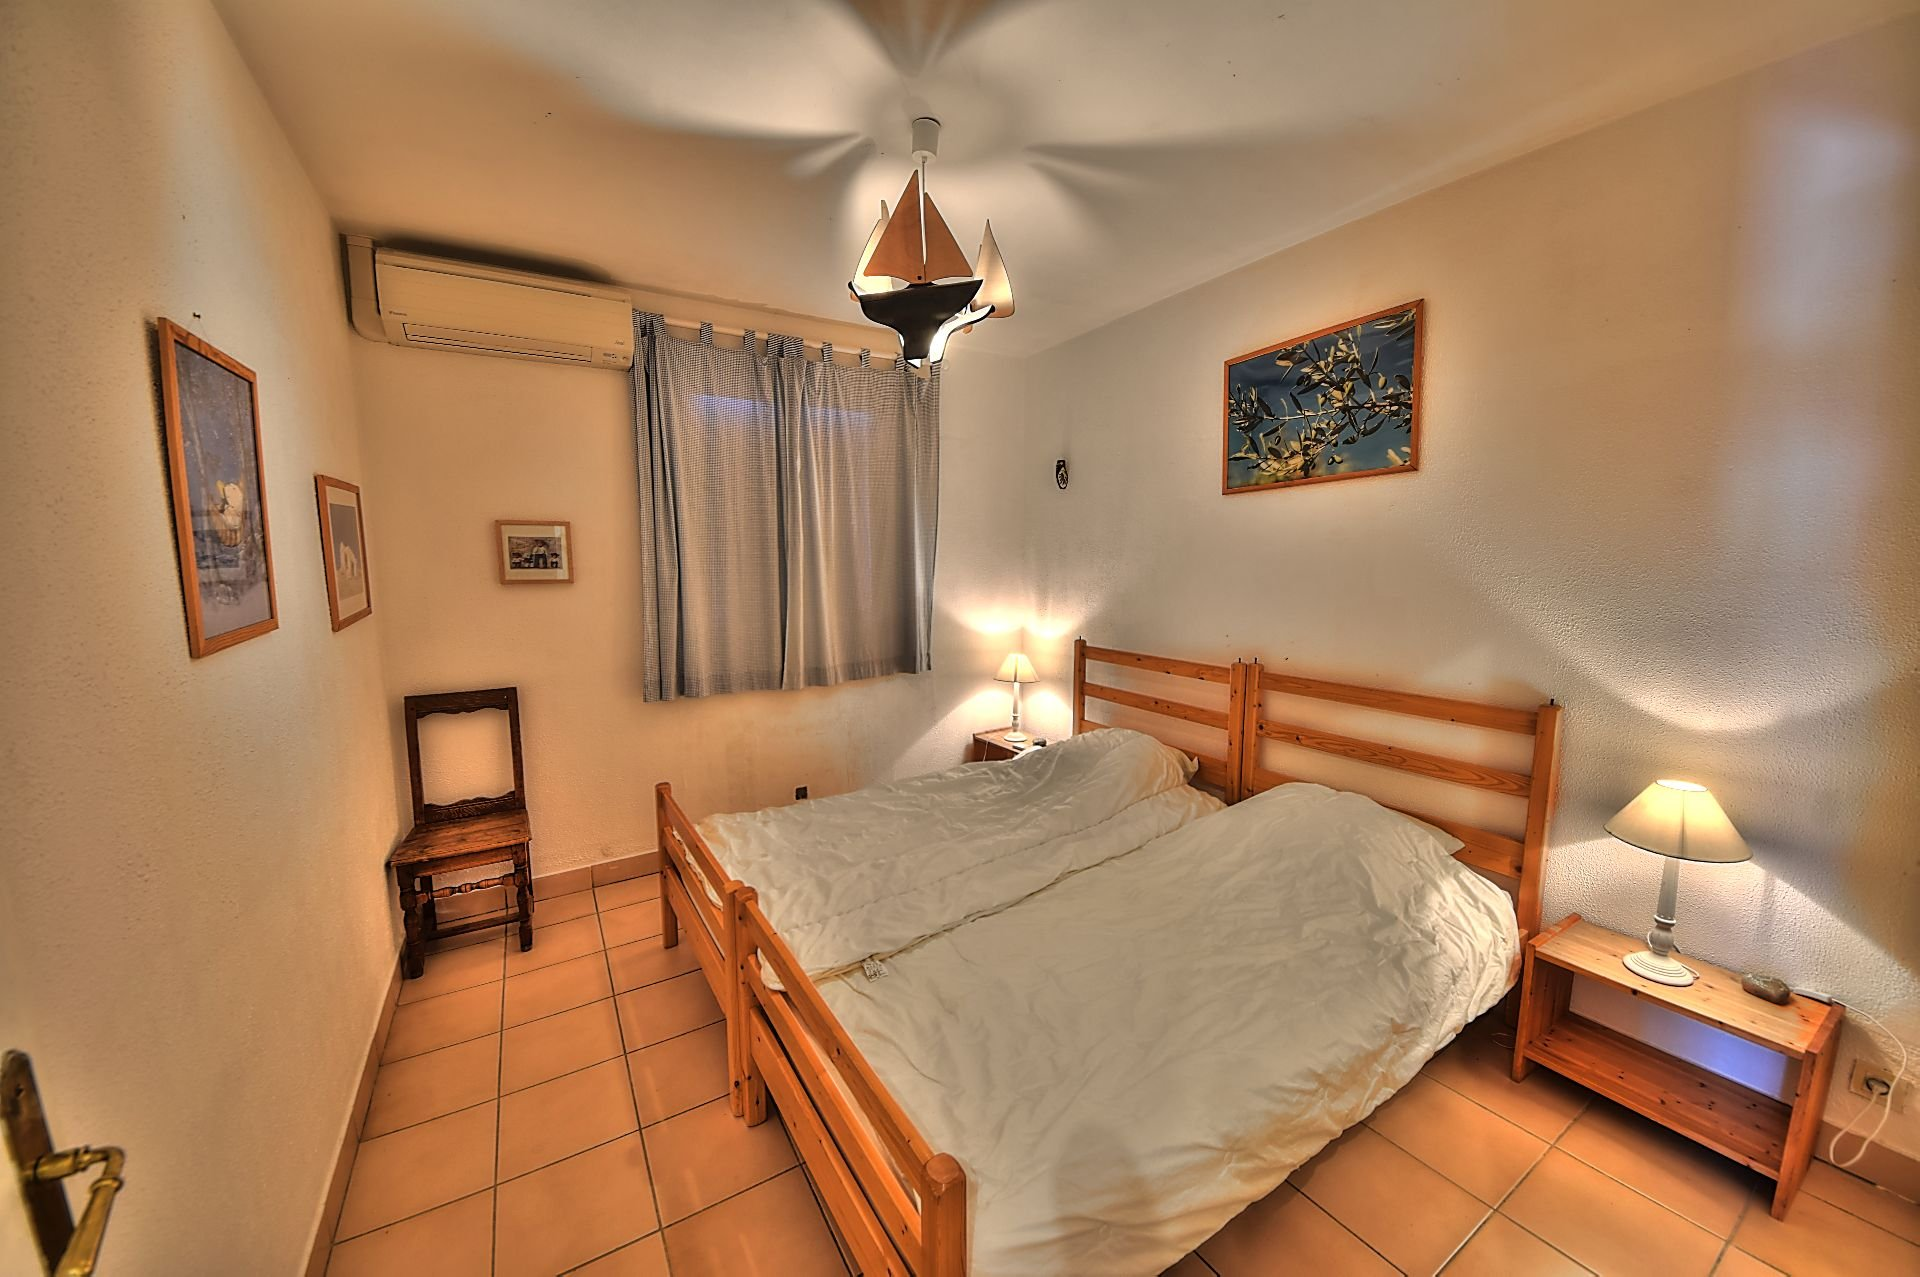 Bedroom 2 with air conditioning